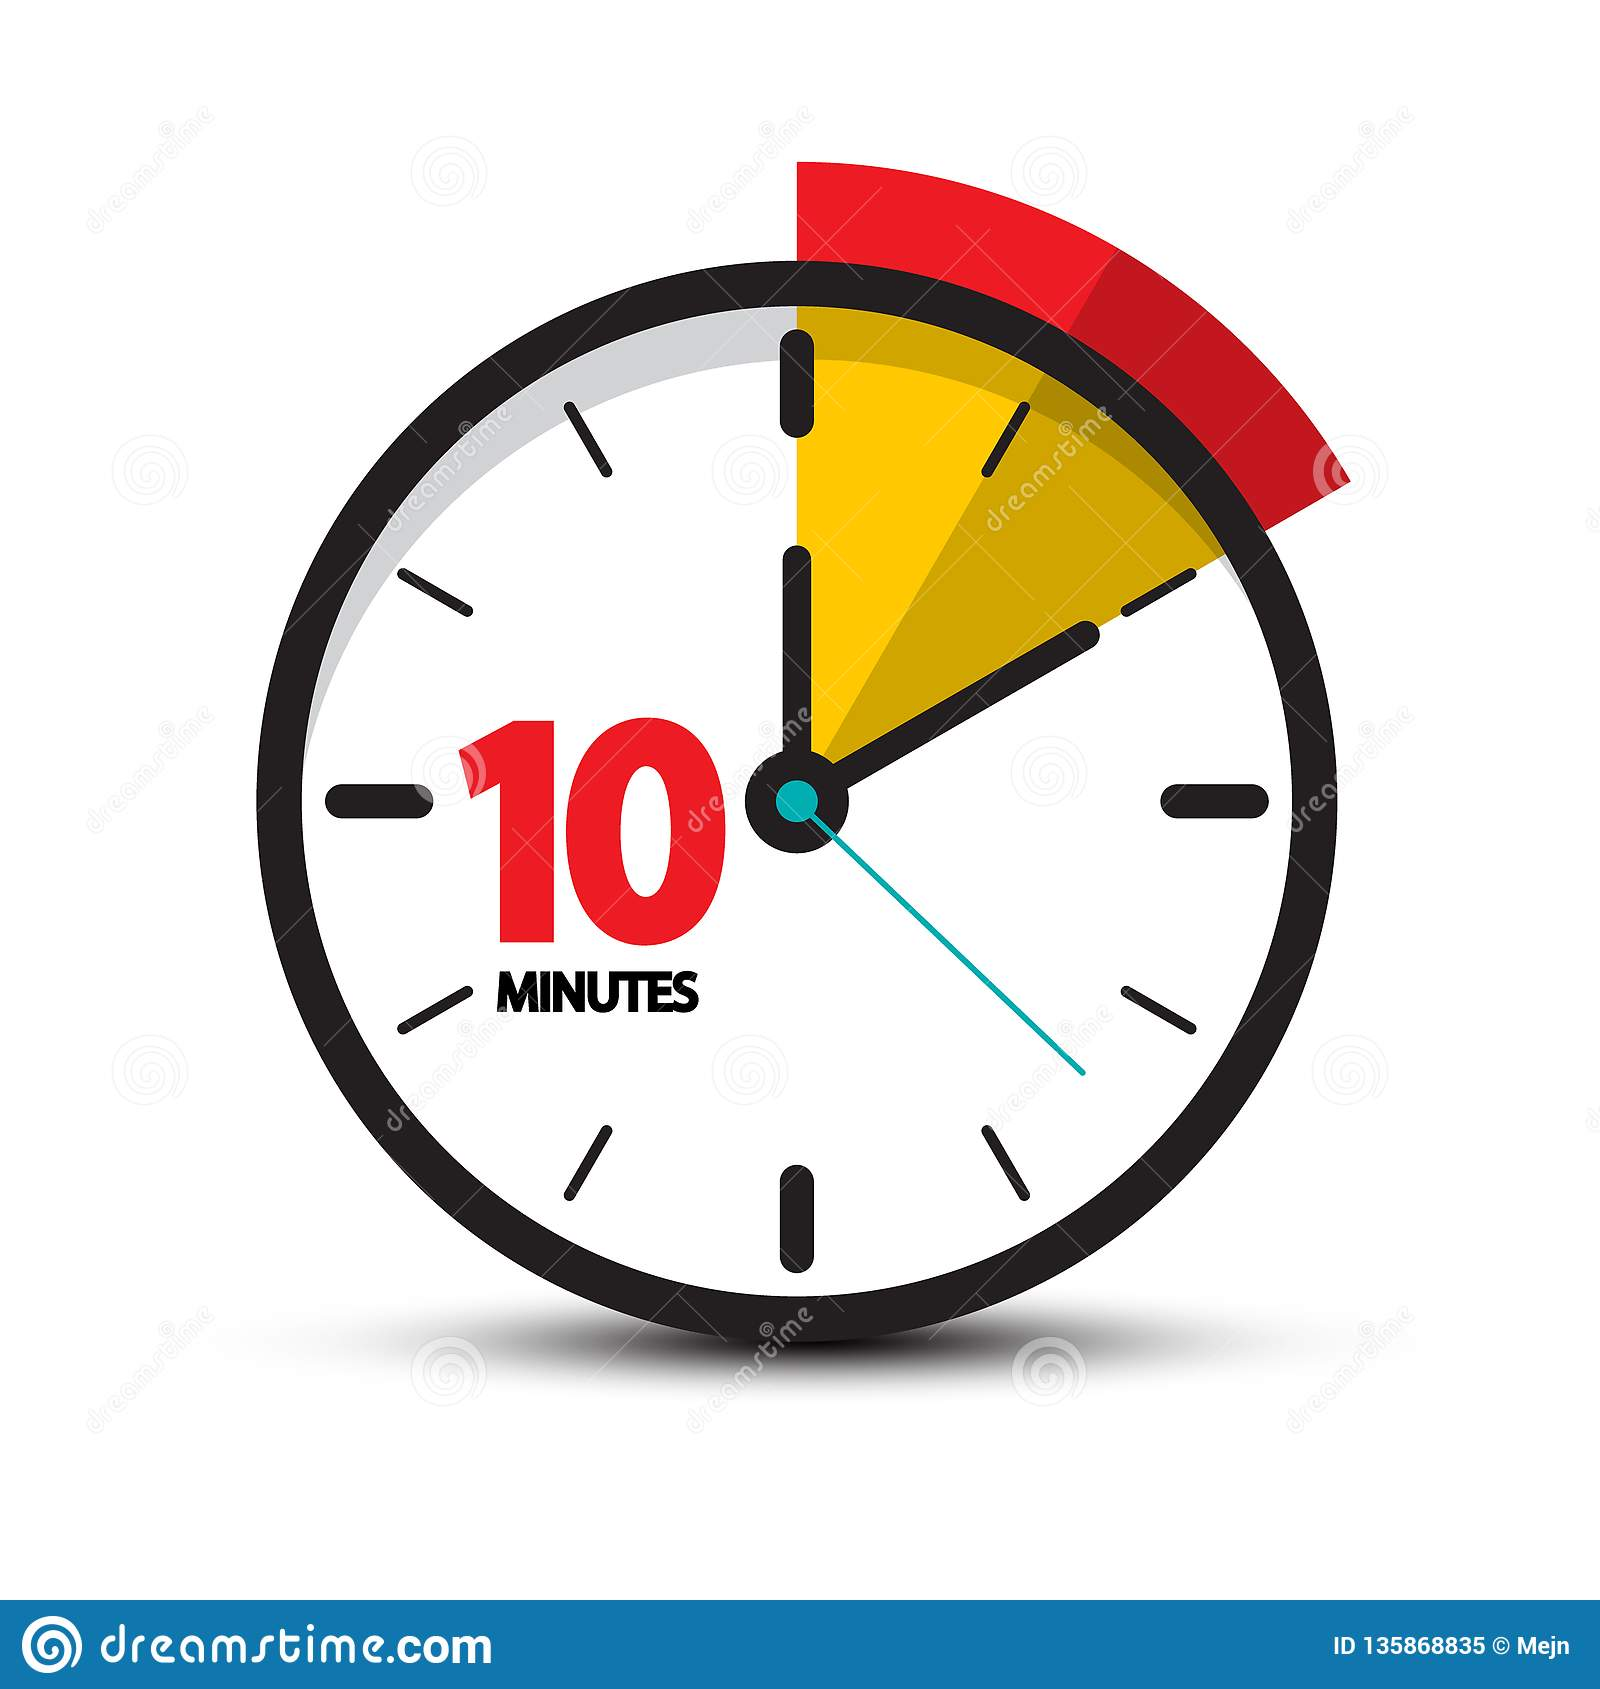 10 minutes clock face vector ten minute icon stock vector